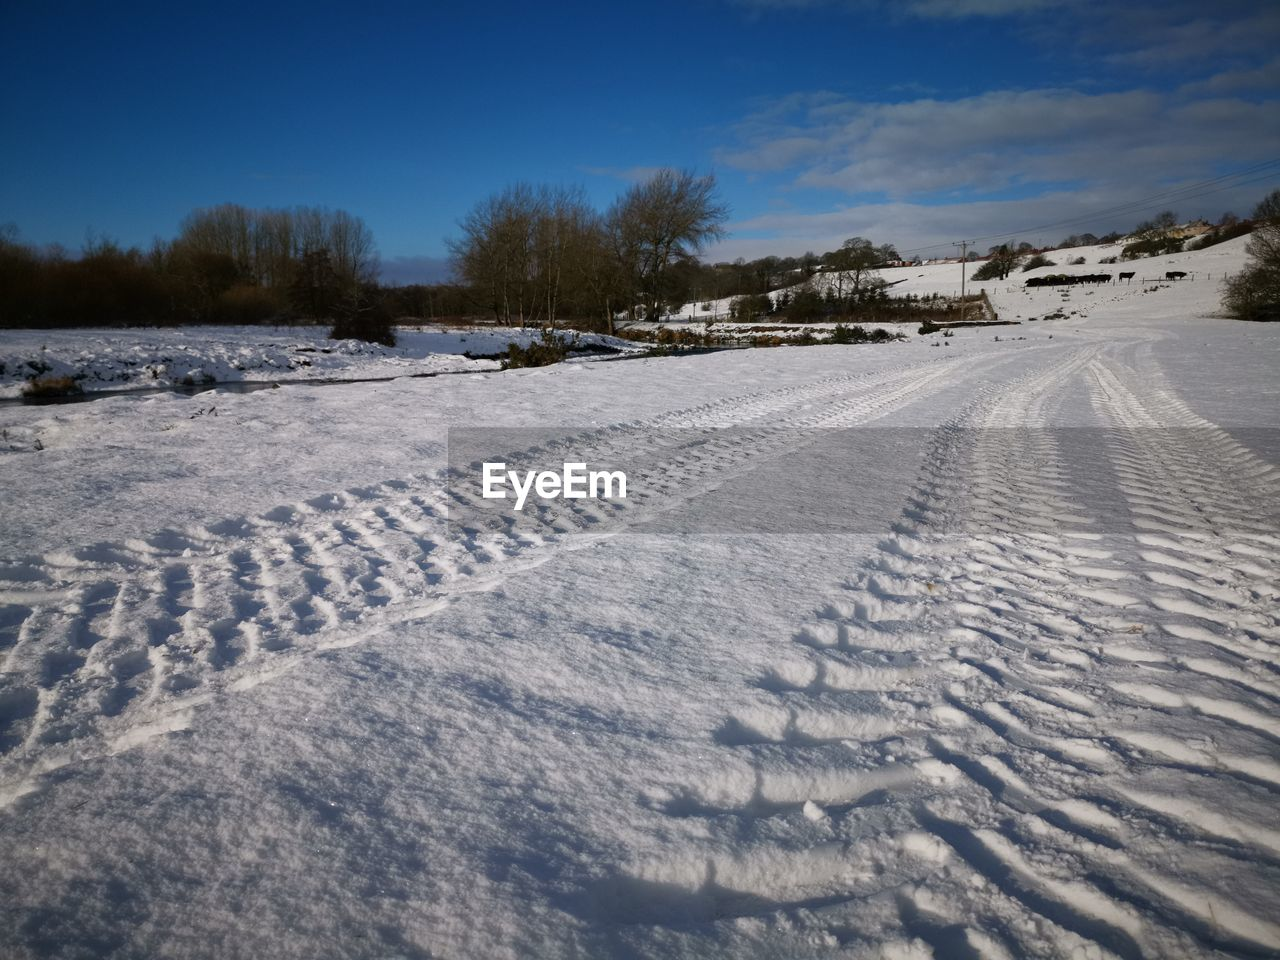 snow, cold temperature, winter, land, nature, sky, field, environment, white color, scenics - nature, landscape, tire track, plant, covering, tranquil scene, no people, tranquility, beauty in nature, tree, outdoors, powder snow